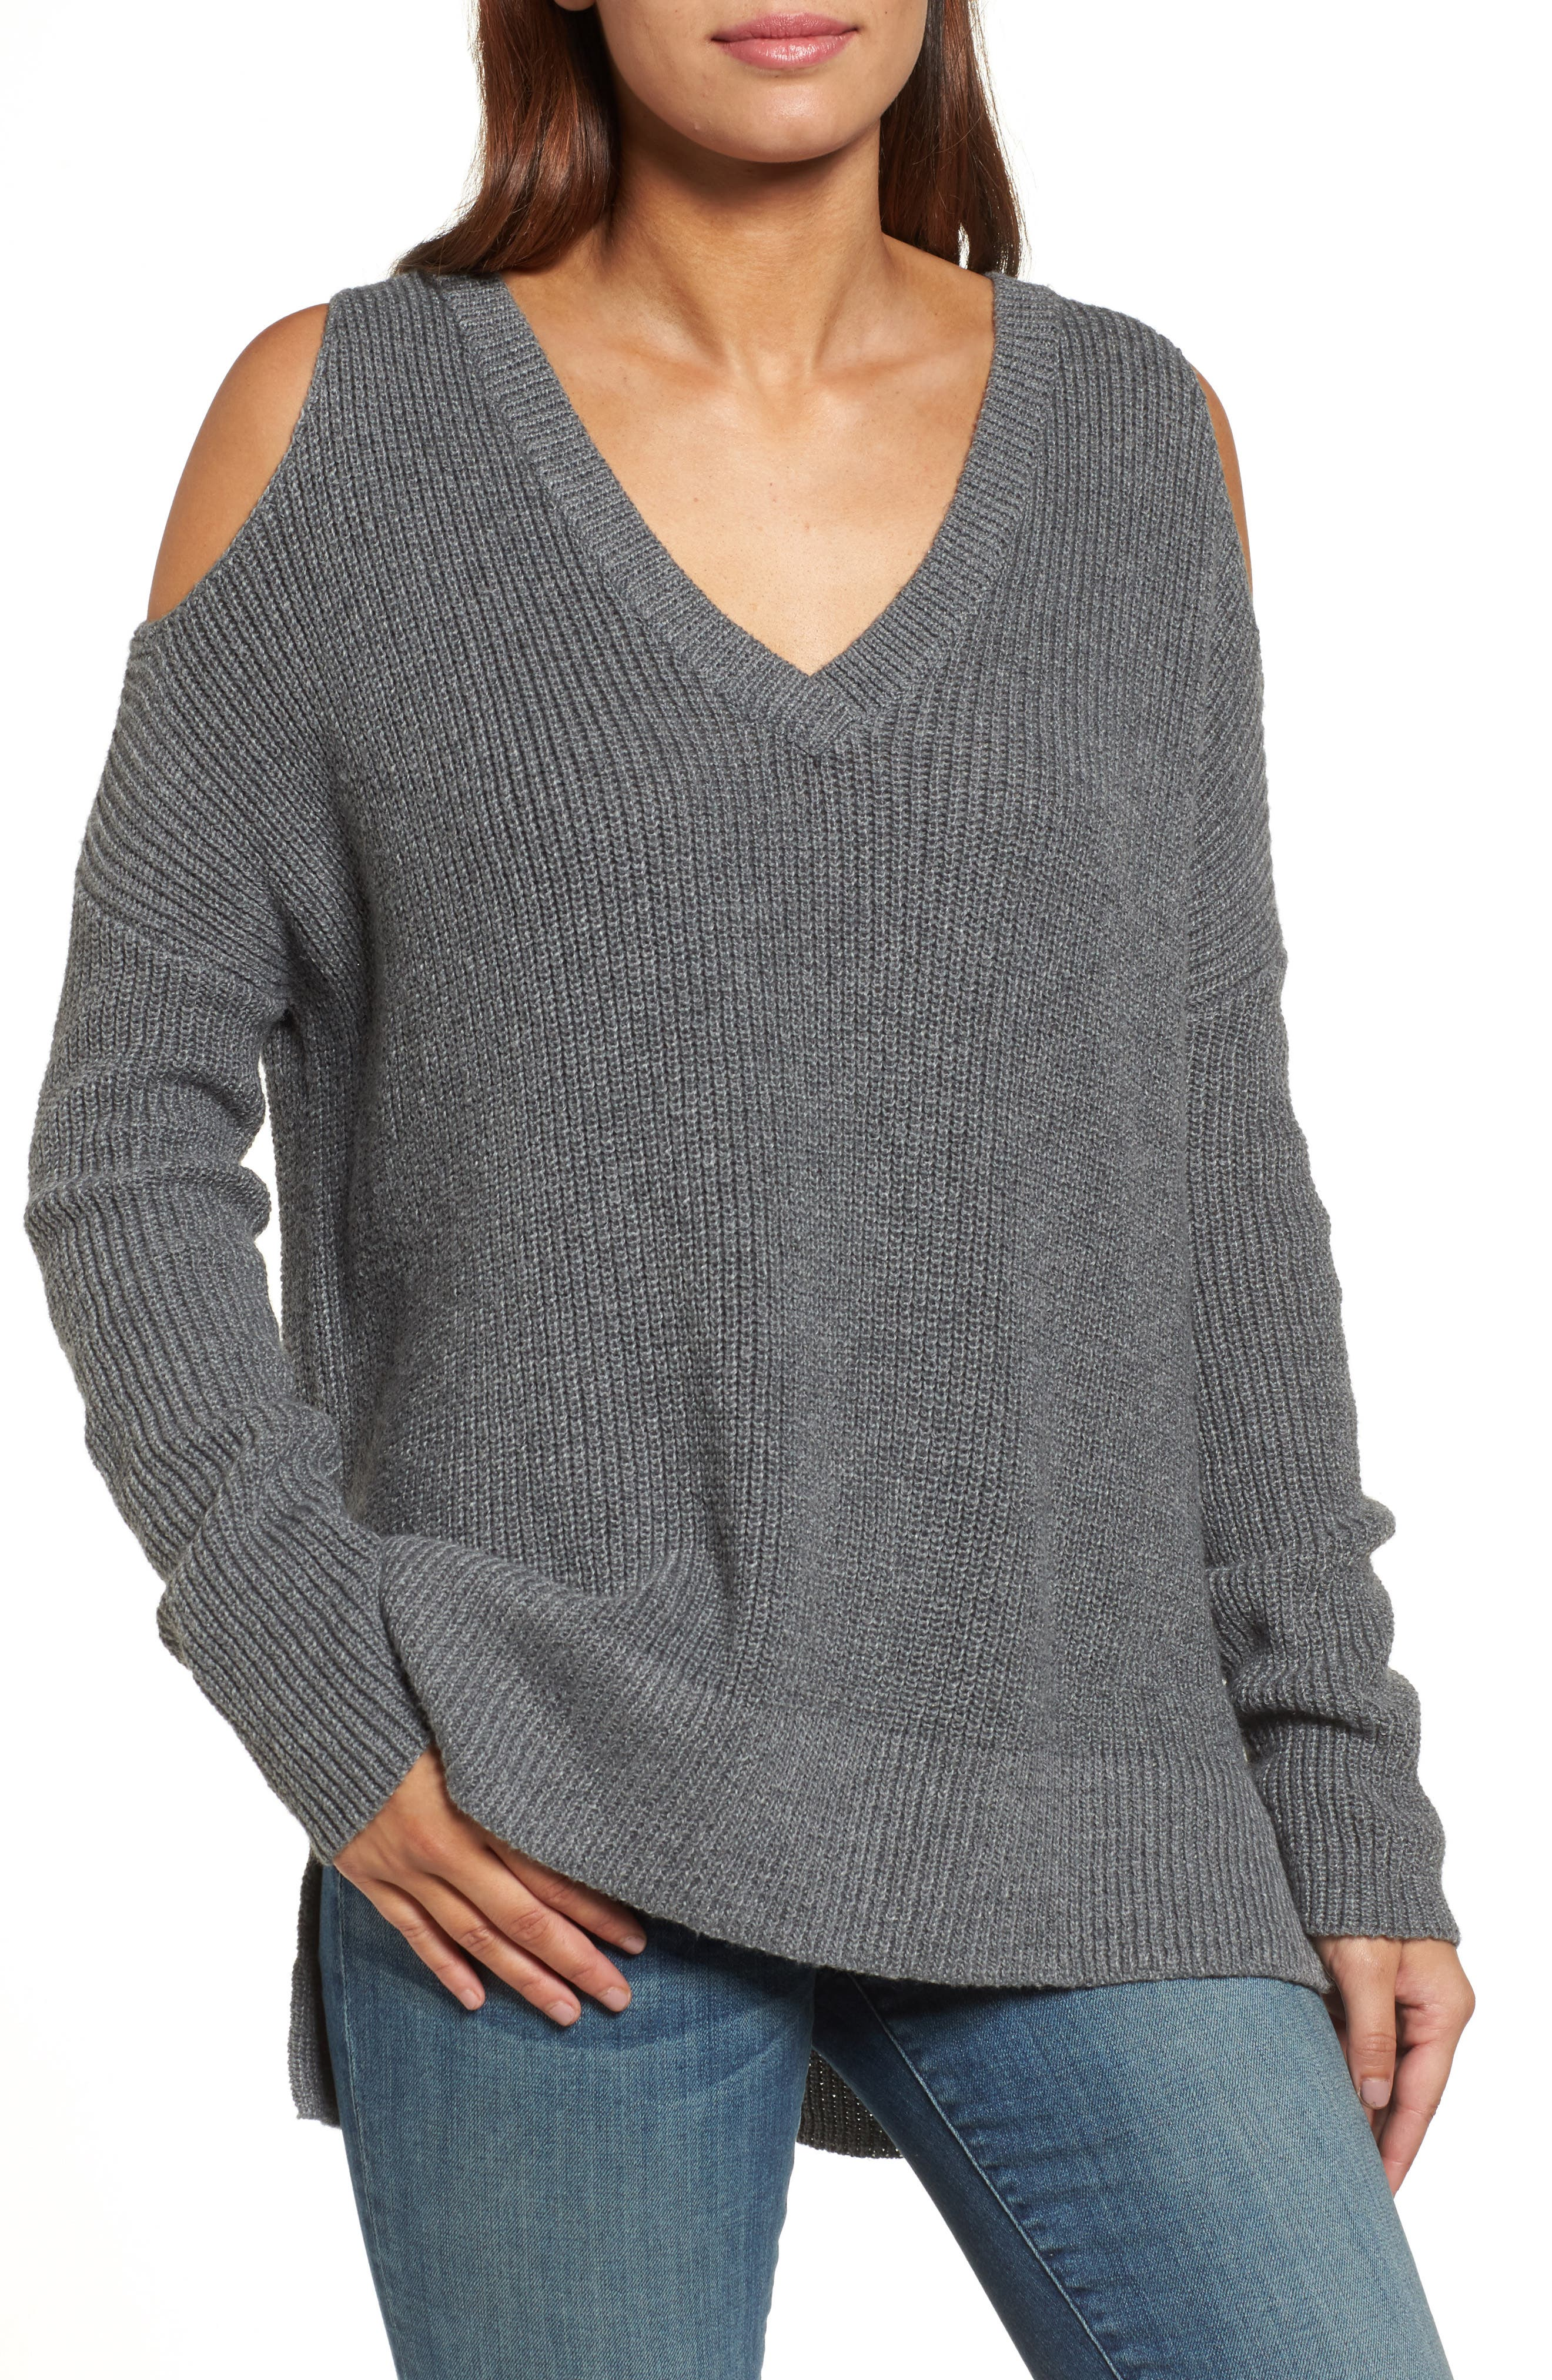 Cold Shoulder Tunic Sweater,                             Main thumbnail 1, color,                             020